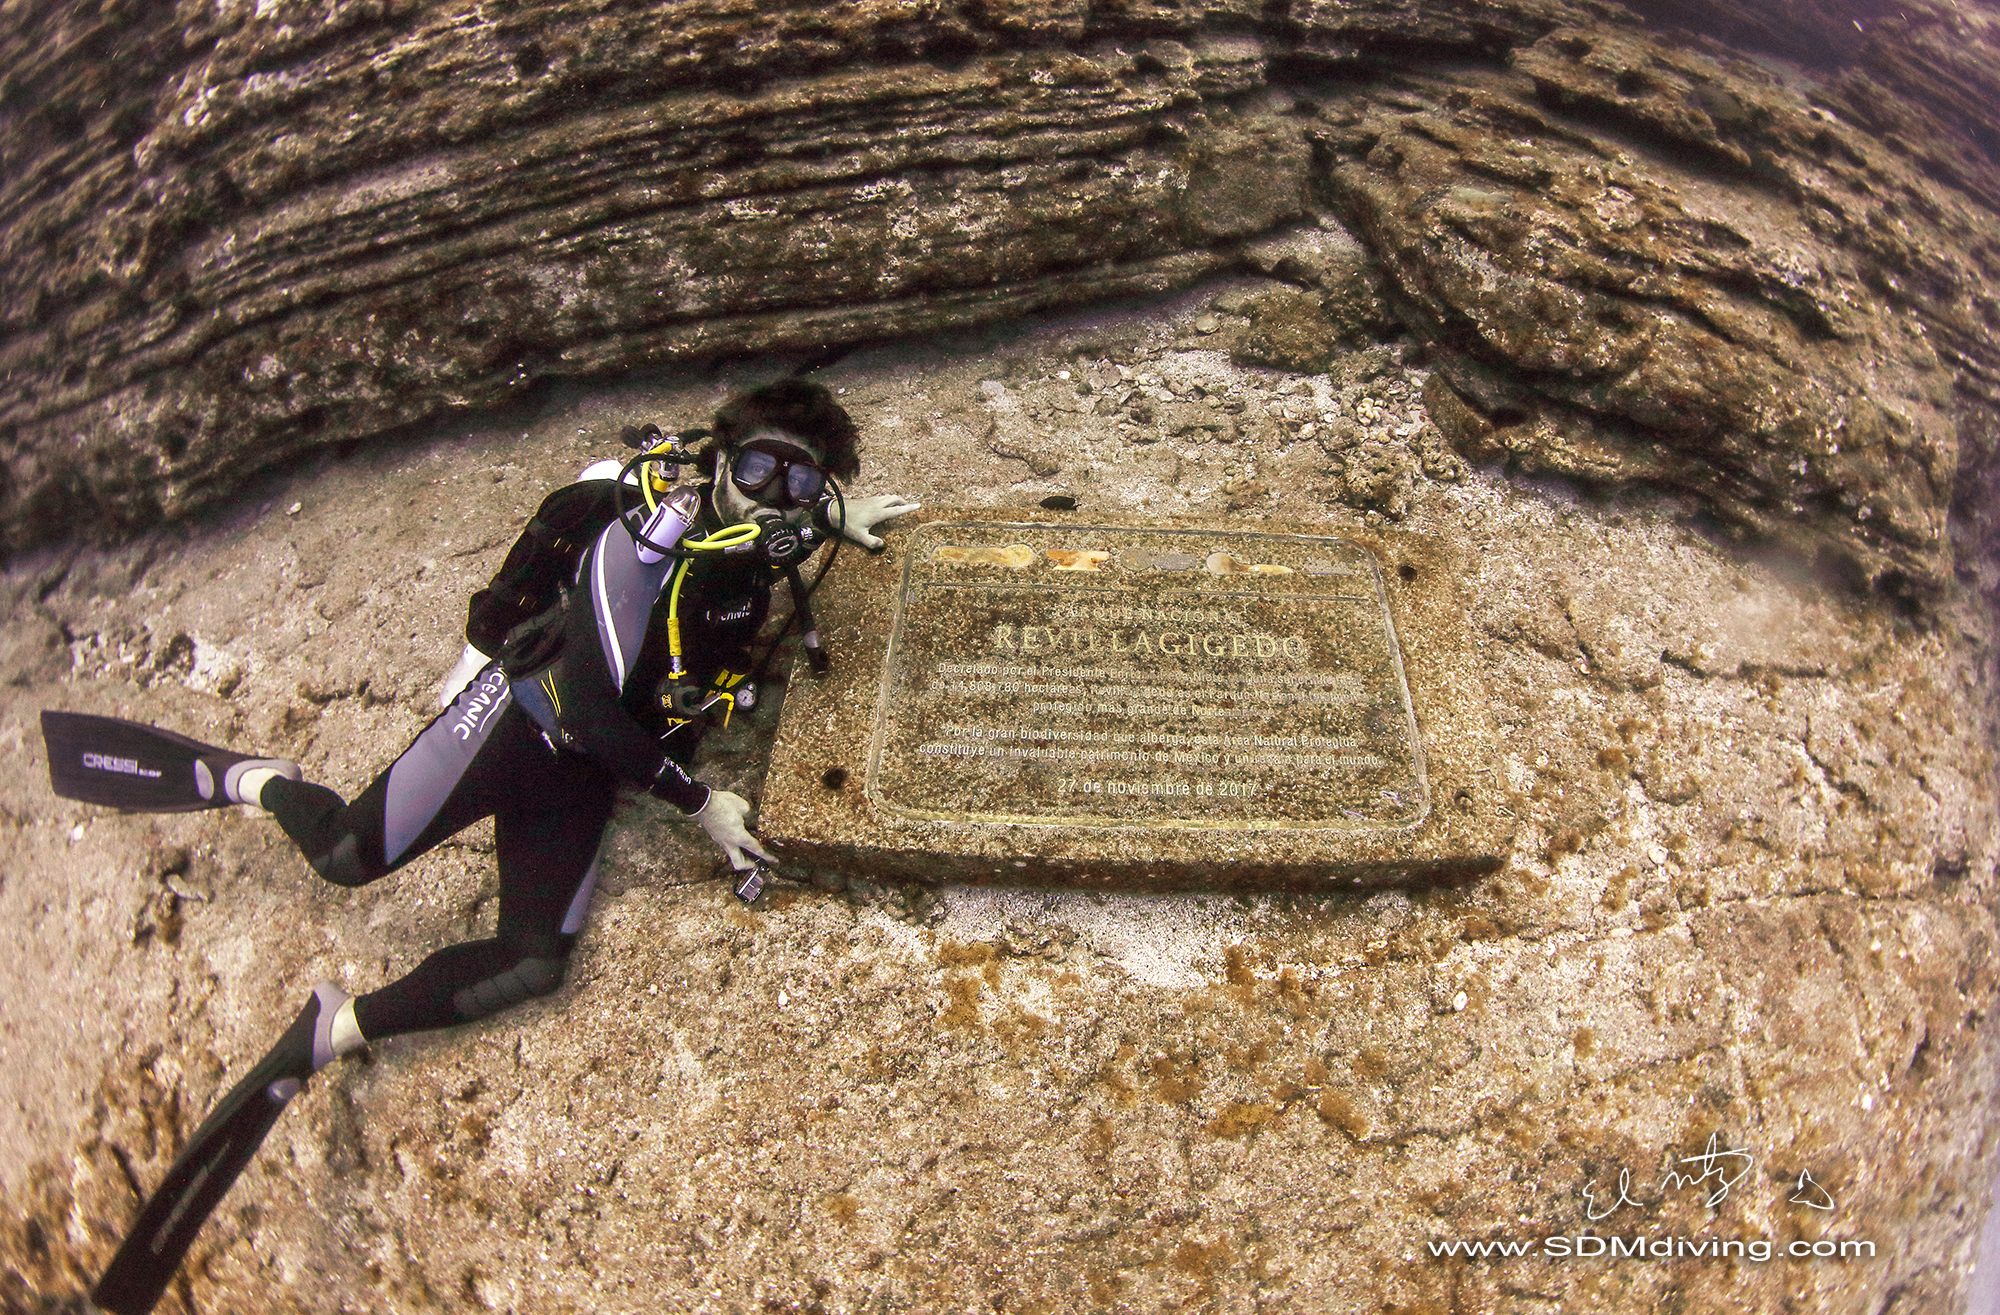 Alex next to a plaque placed at the dive site honoring the UNESCO status. And yup, I took that shot… pretty pumped.